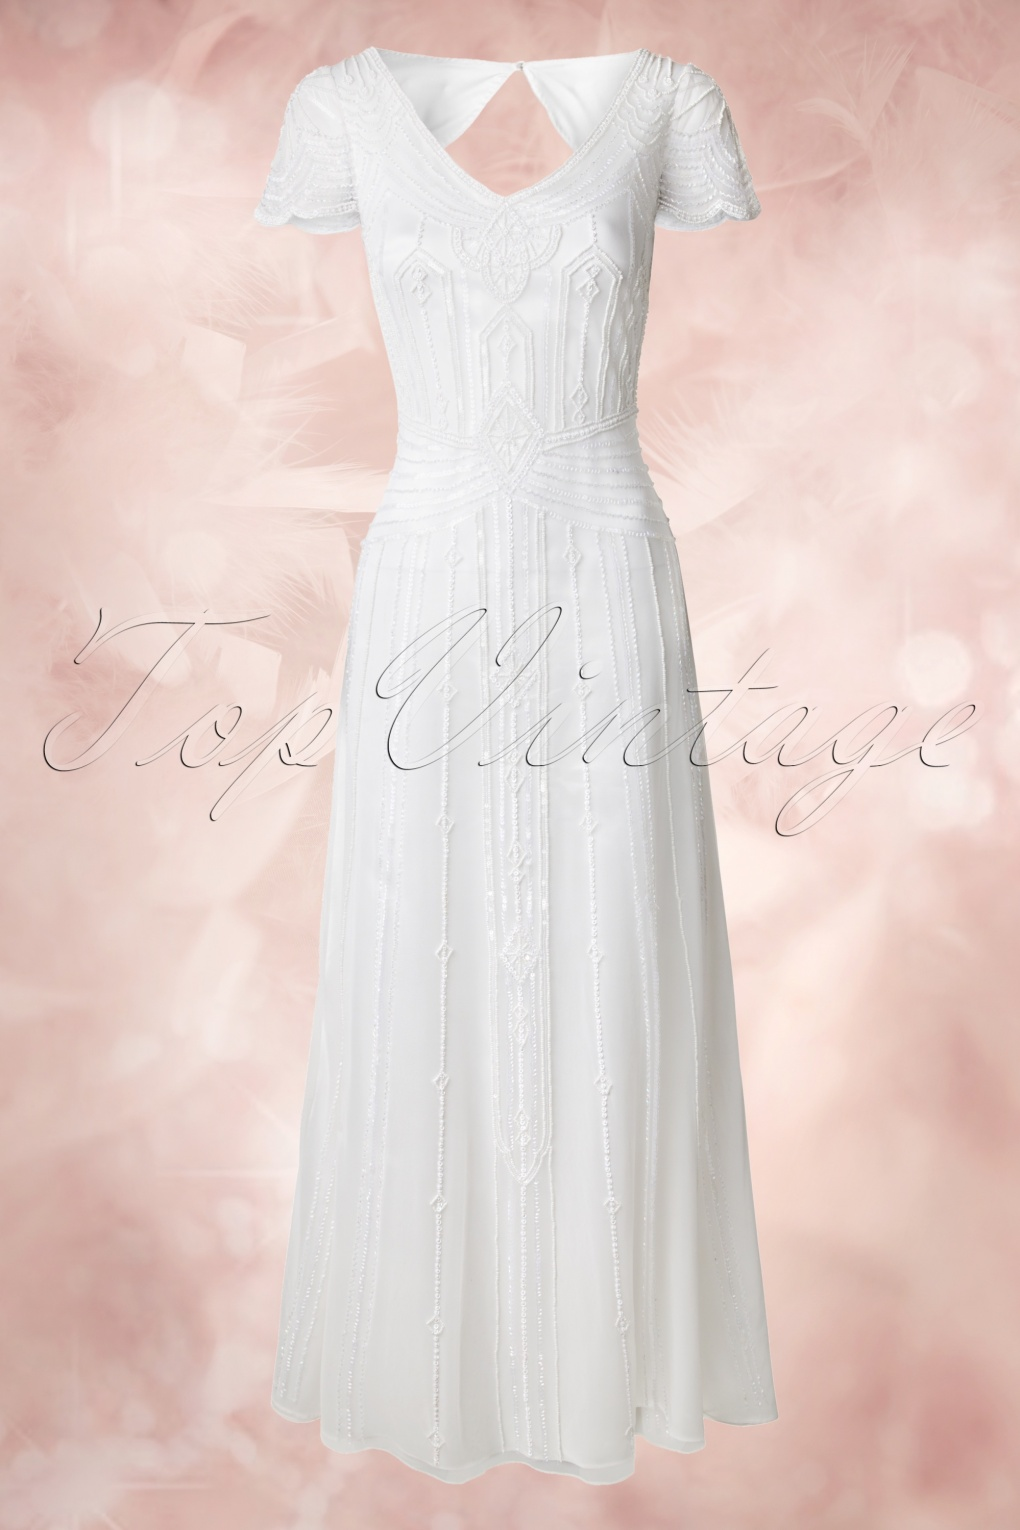 Vintage Inspired Wedding Dresses 20s Phoebe Embellished Maxi Dress in White £234.34 AT vintagedancer.com